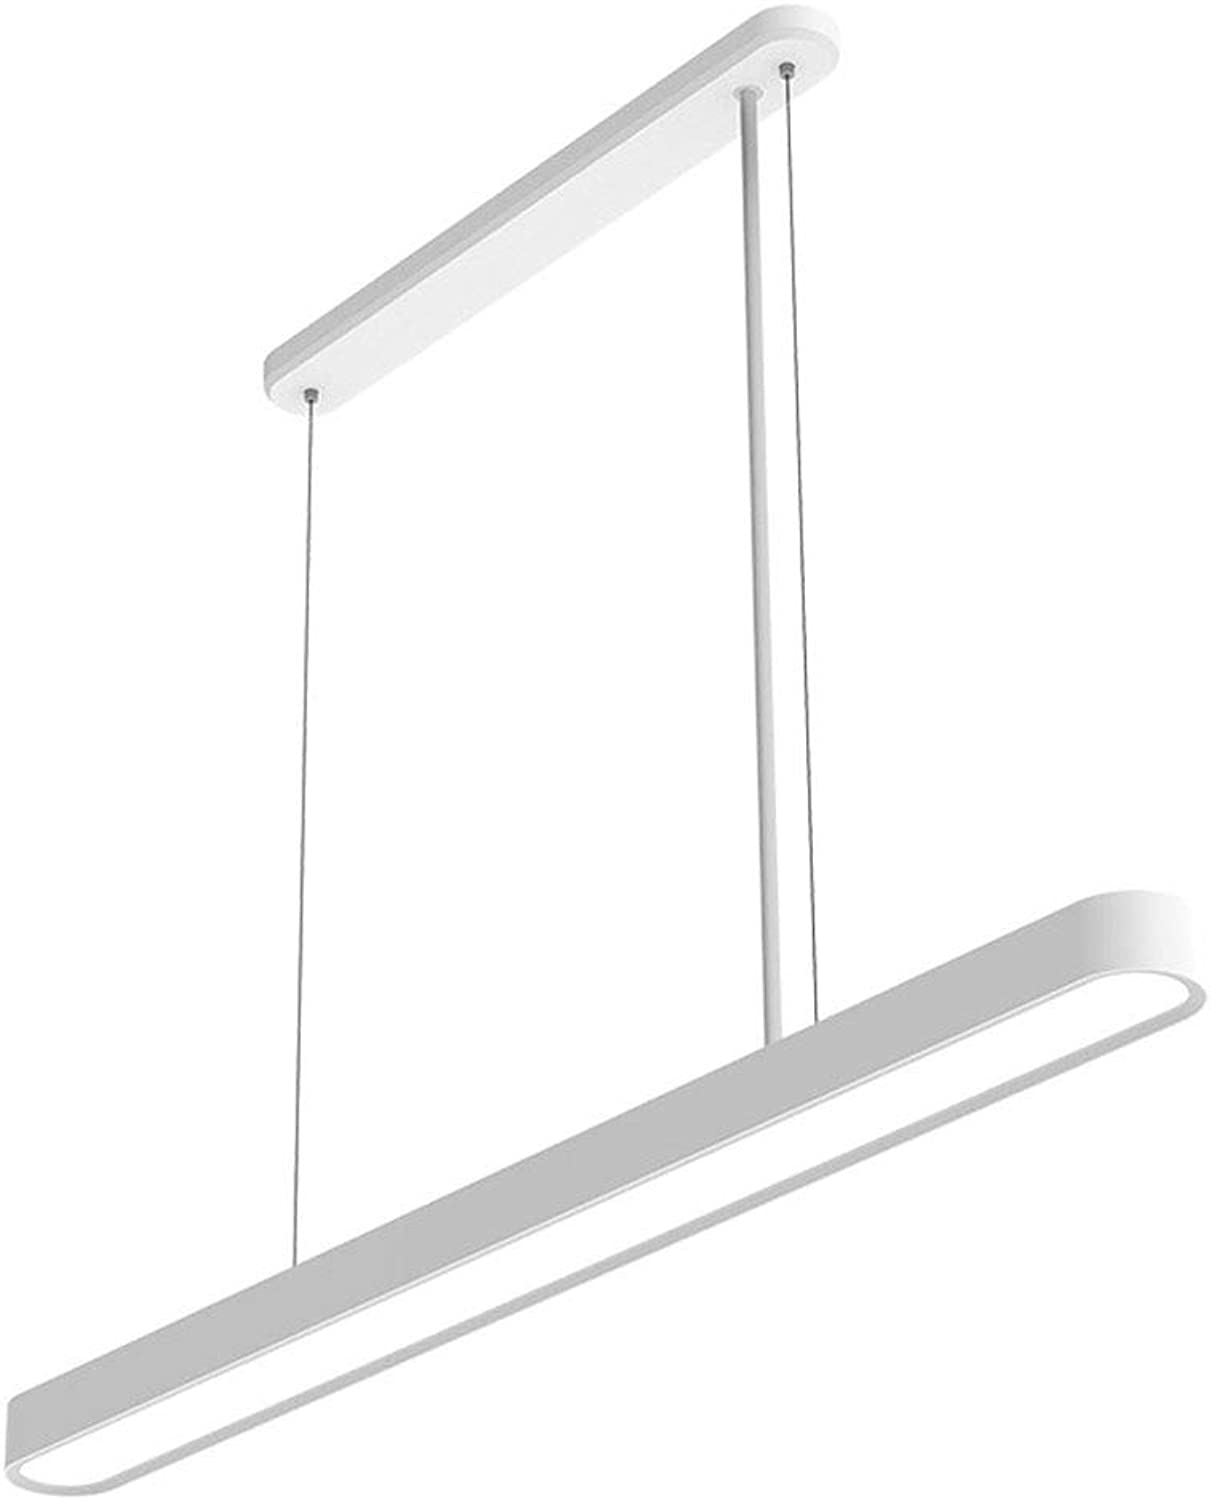 Yeelight 33W 2700K-6000K Farbtemperatur Dimmable RGB Smart LED-Leuchter (LED-Kronleuchter)